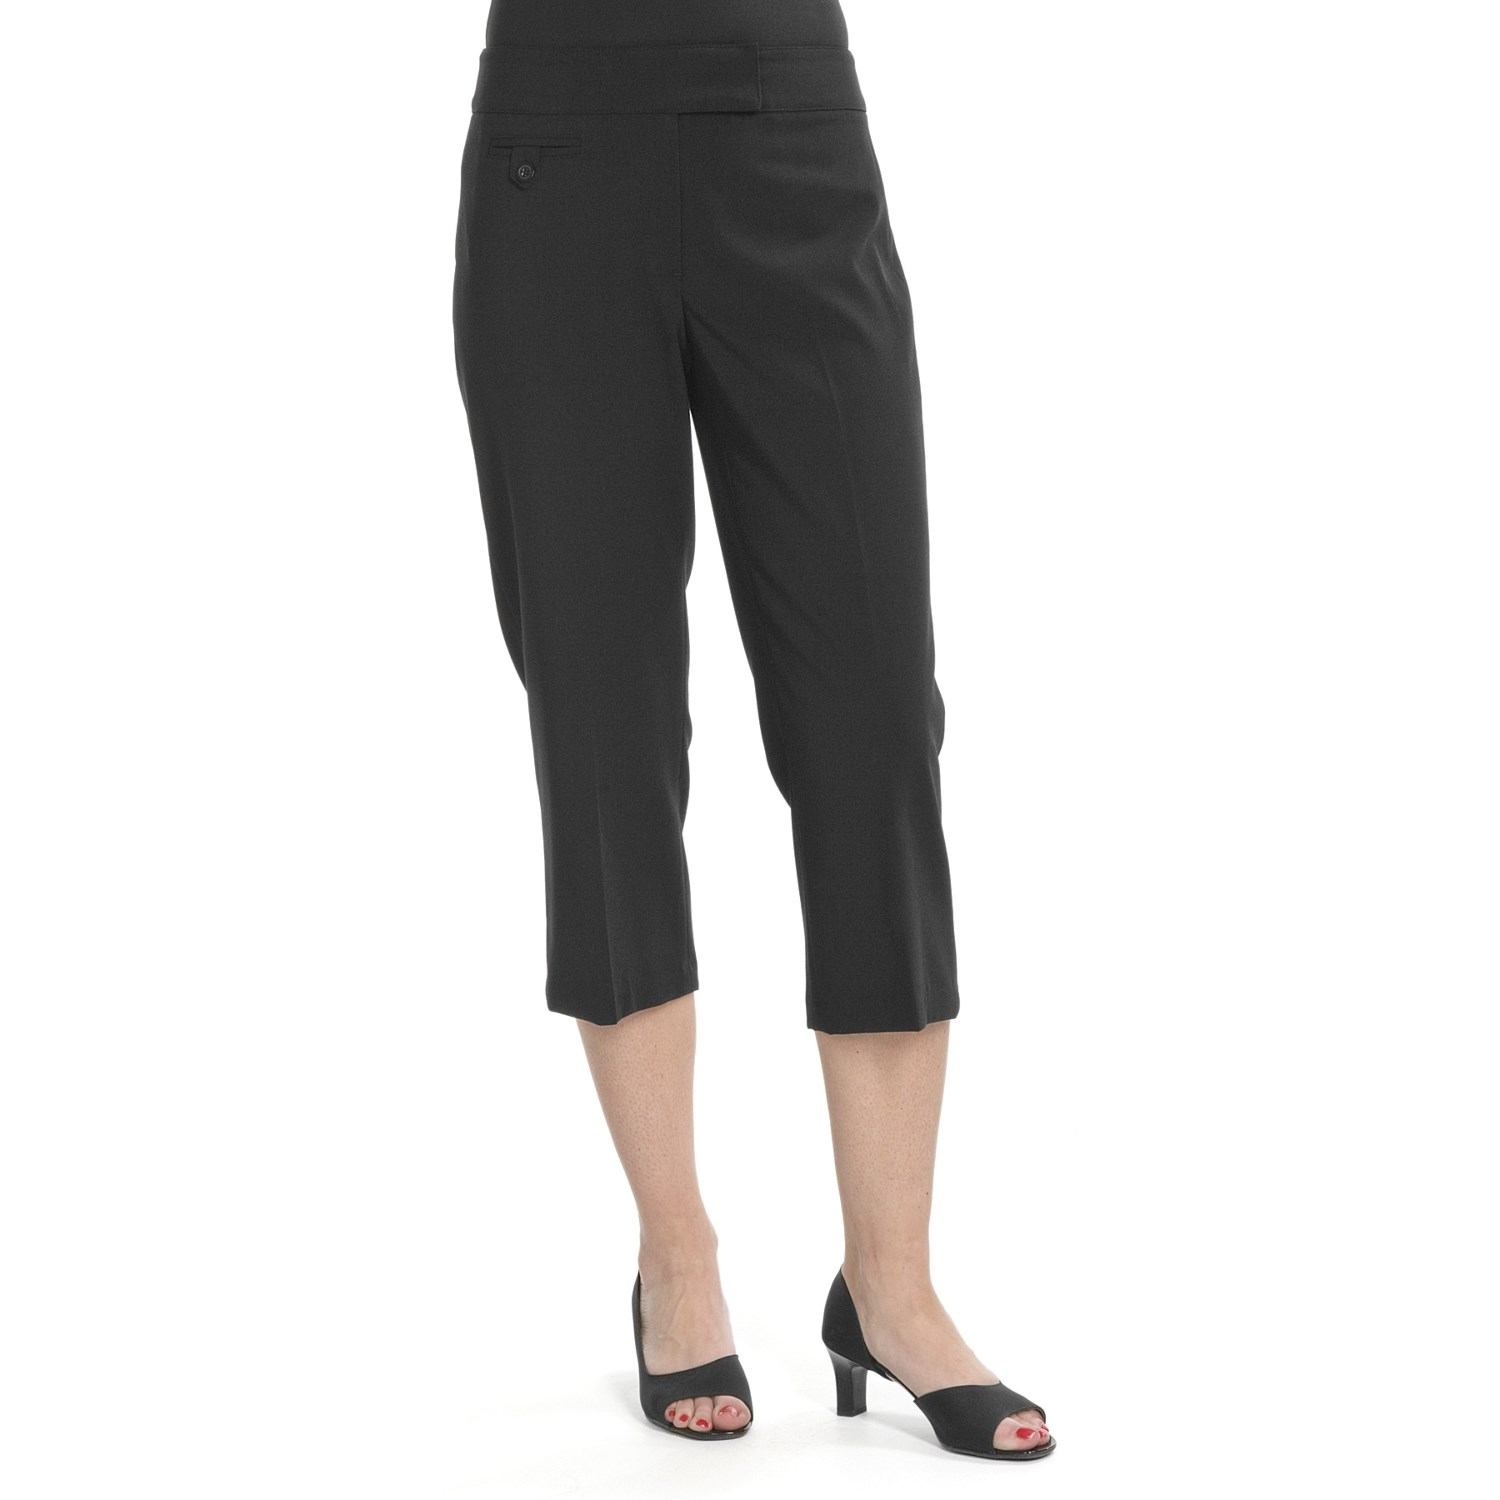 Perfect for everyday wear, these versatile capris are designed with an elastic waistband for day-to-night ease. Sure to be favorite, their relaxed fit will keep your appeal casual, cute, and comfortable.